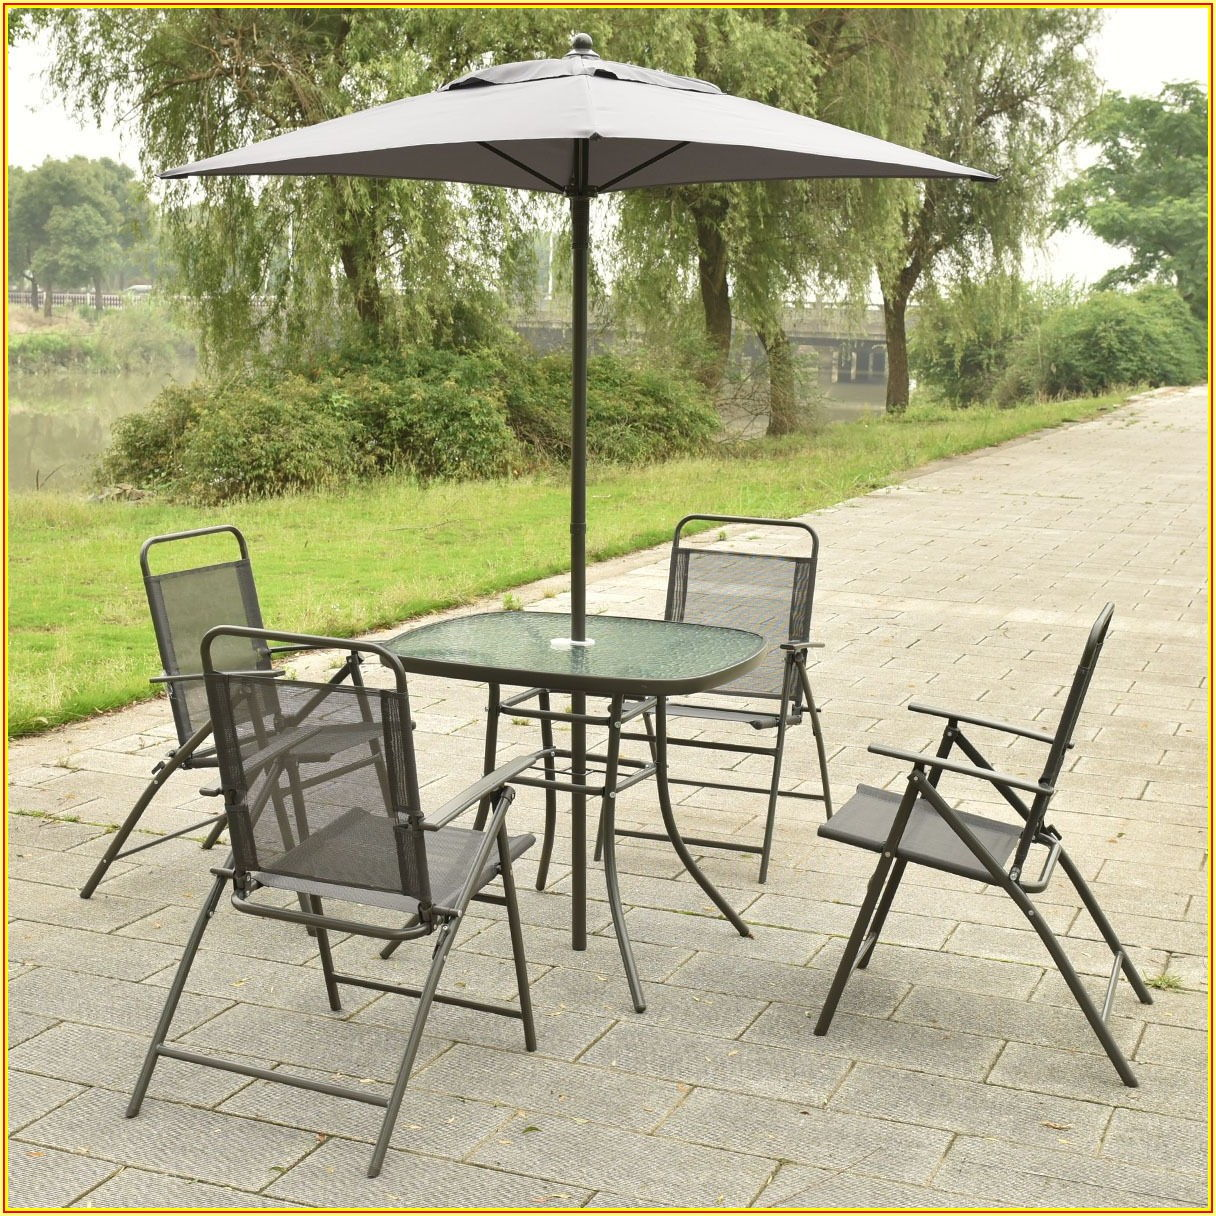 Walmart Patio Set With Umbrella